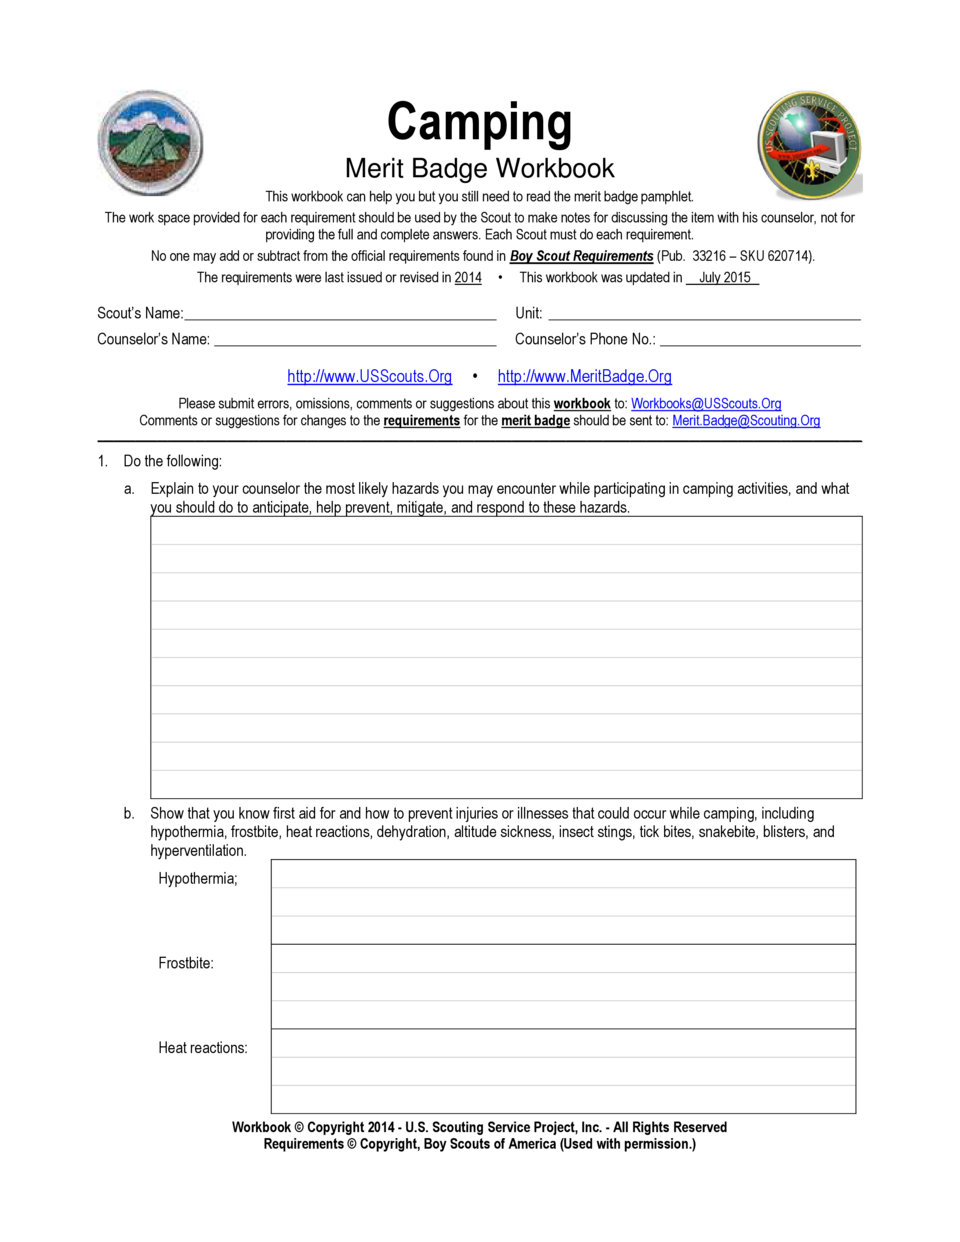 Worksheets Boy Scout Merit Badge Worksheet Answers camping merit badge simplebooklet com workbook this can help you but still need to read the